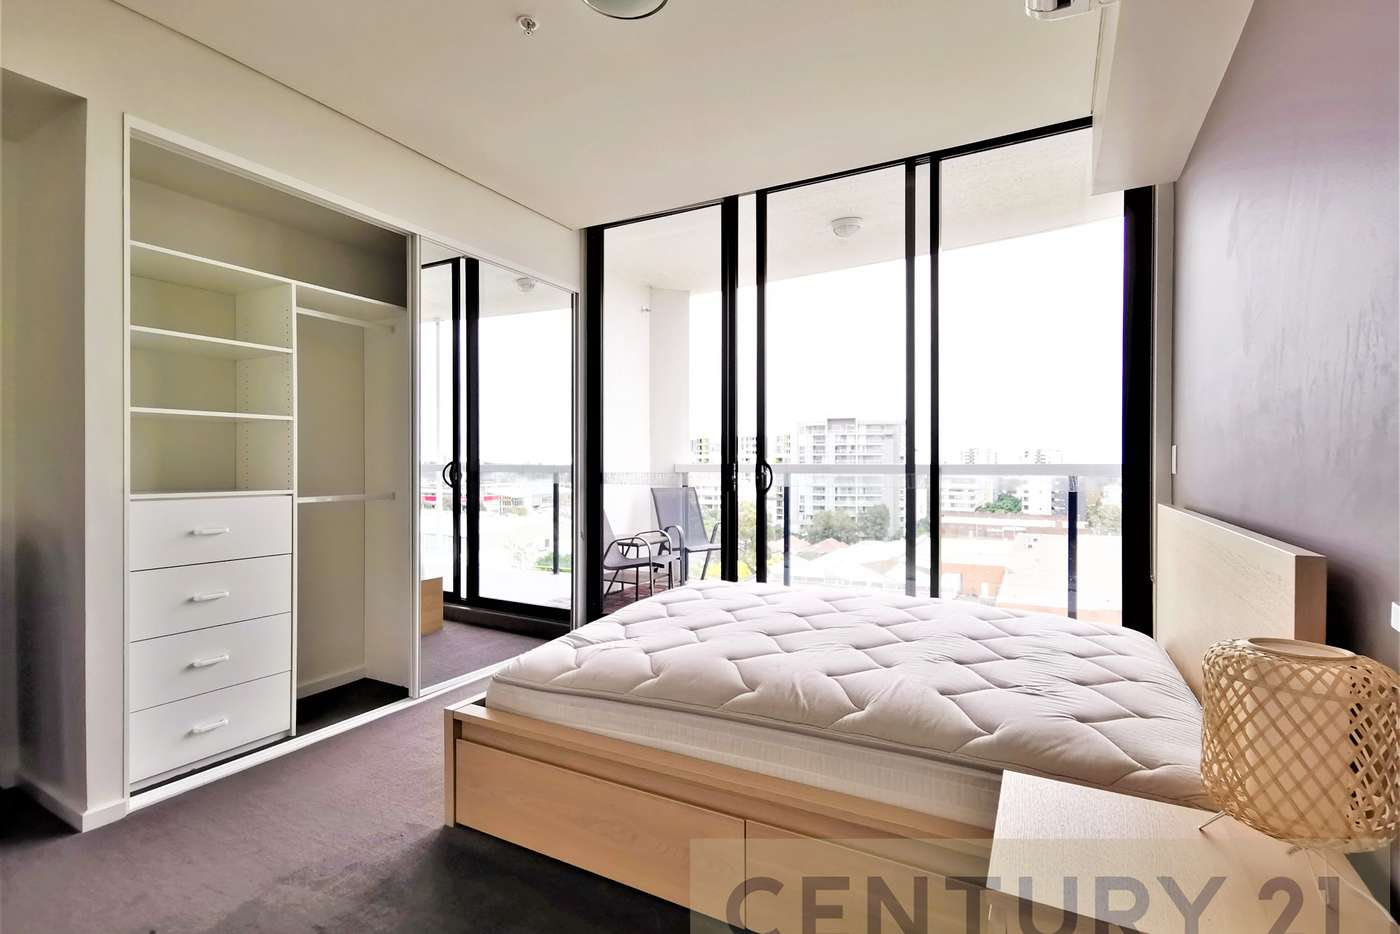 Main view of Homely apartment listing, 702/581 Gardeners Road, Mascot NSW 2020